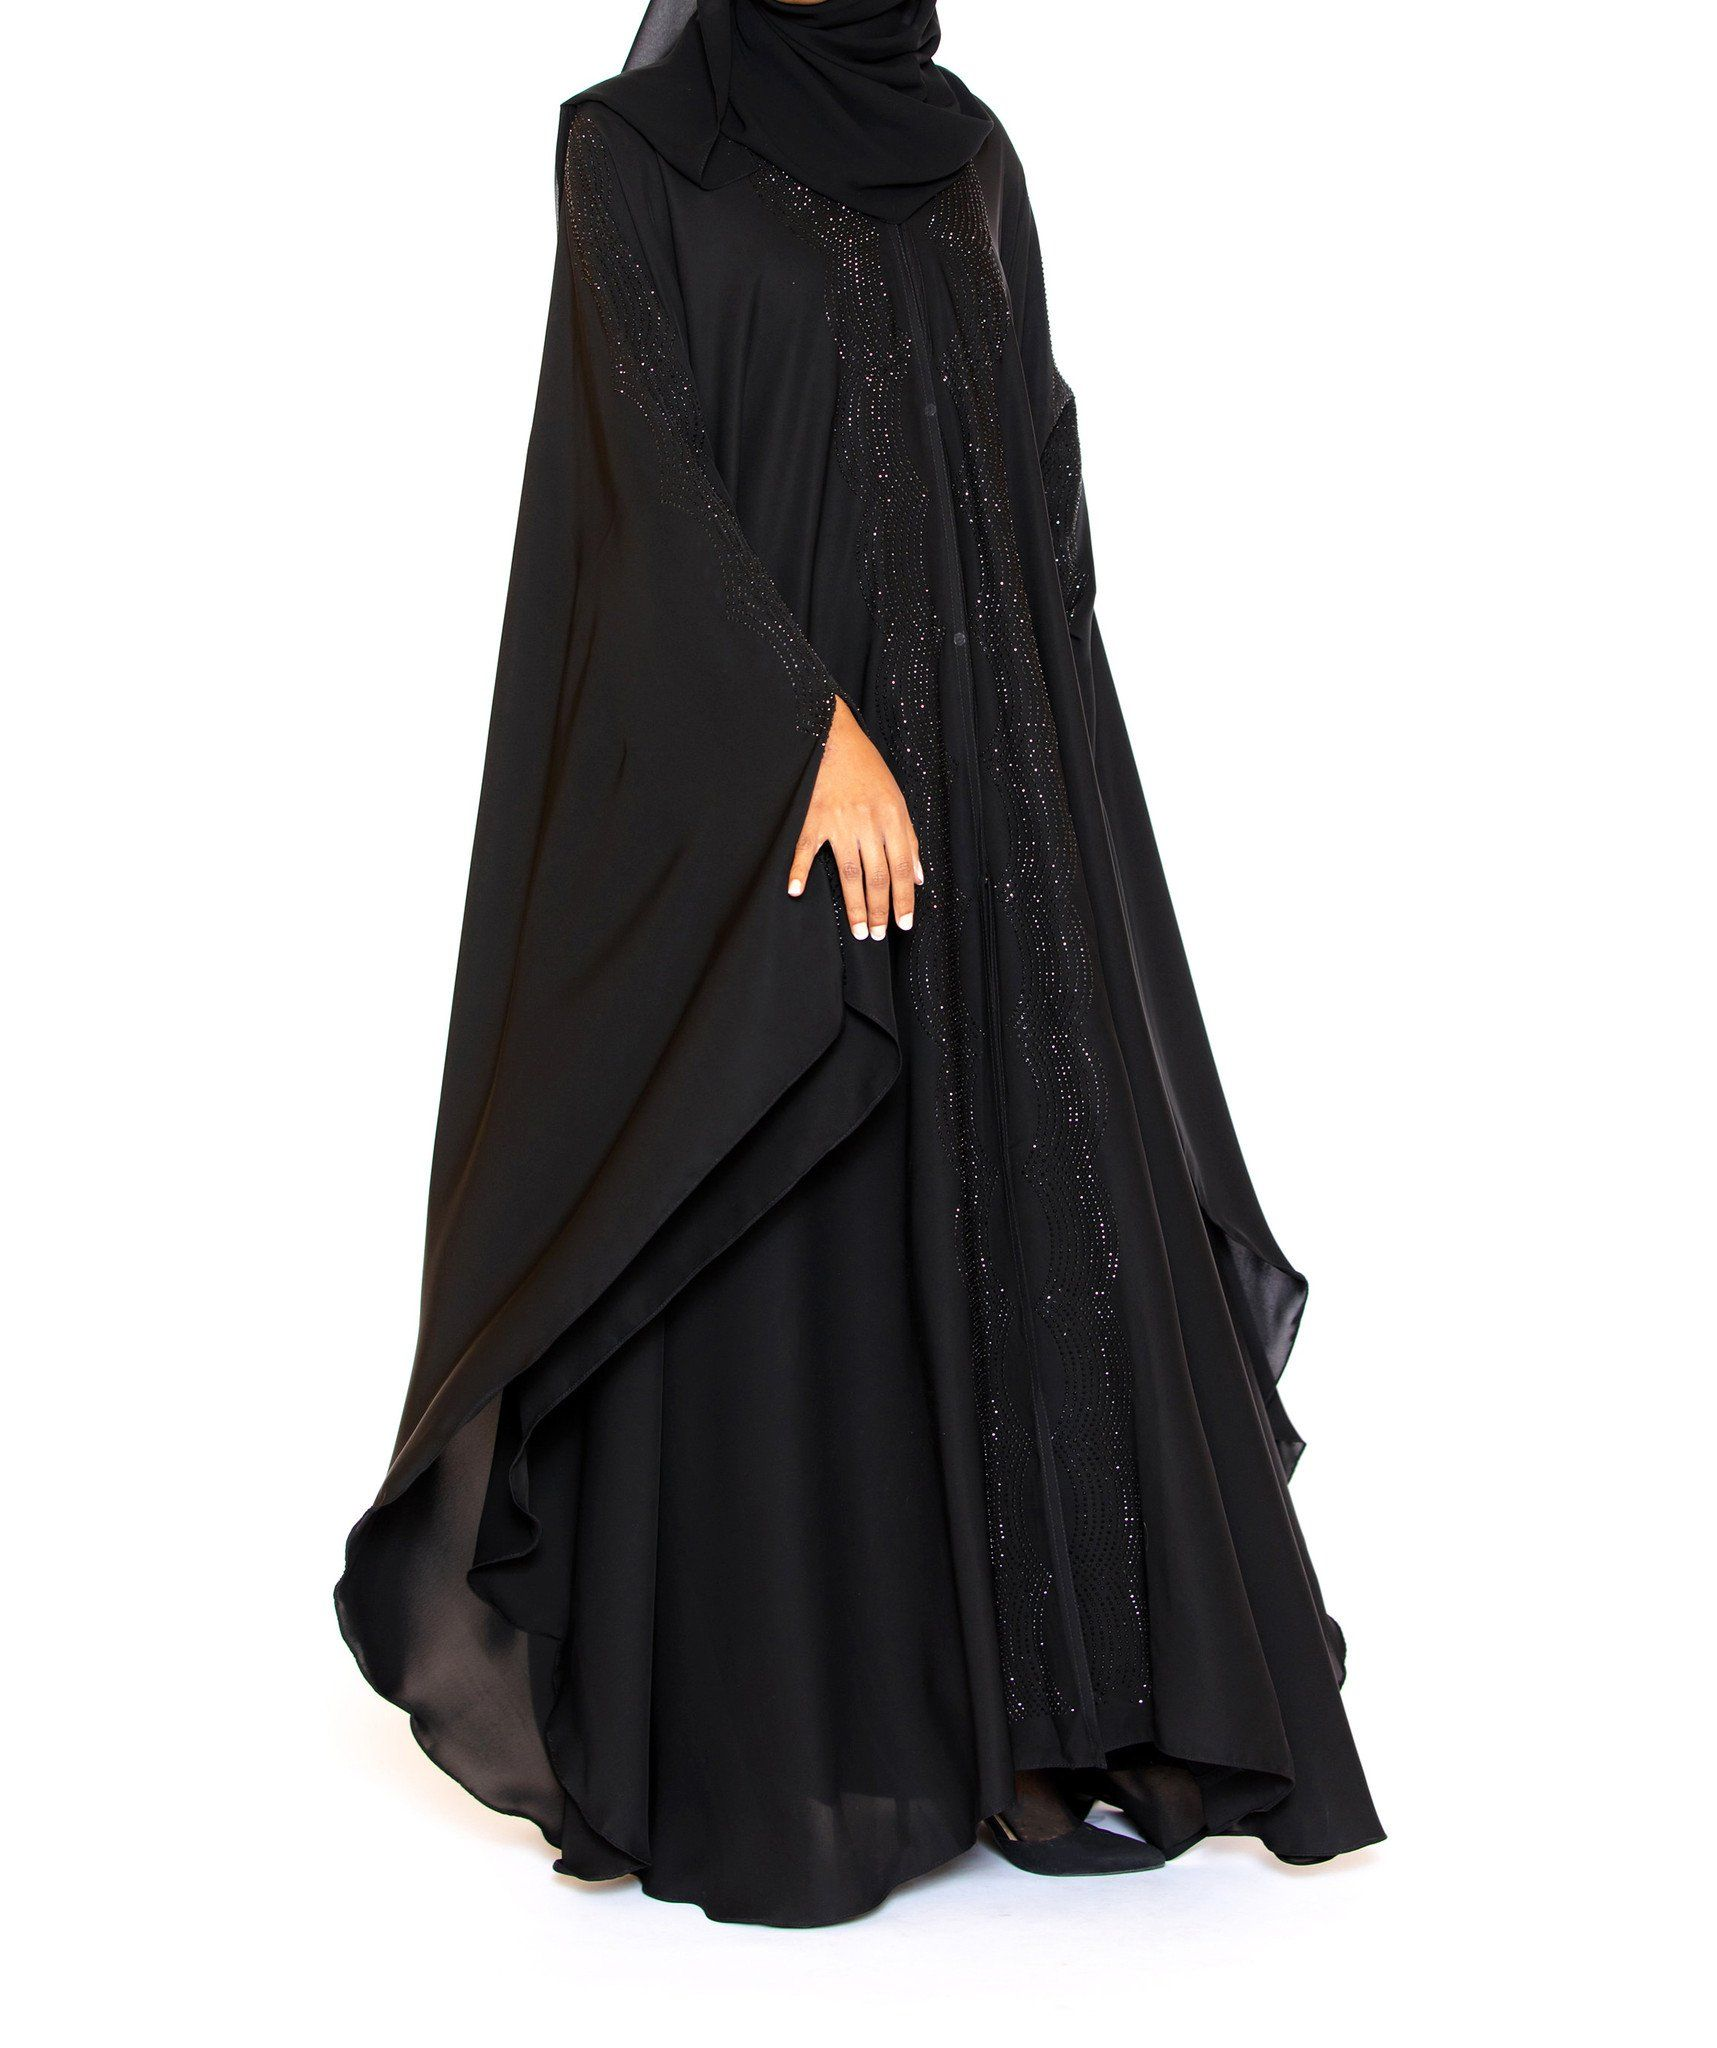 0afc5a066 Adorn yourself in our pure luxury with our beautiful Ebony Abaya. This  exquisite butterfly abaya cape is fabricated with rich, supple silk Nida  and ...